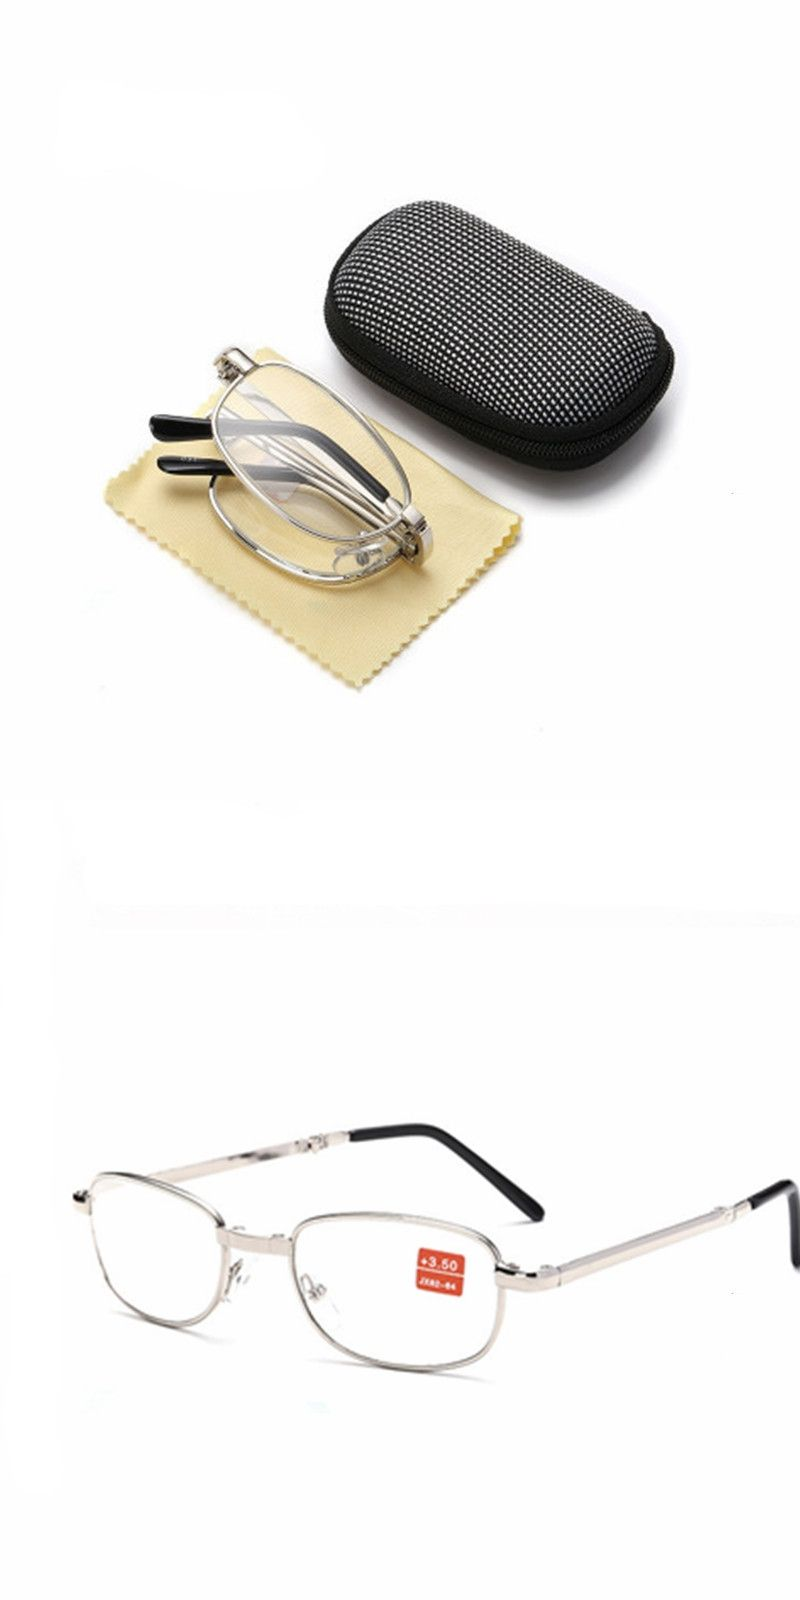 8367d6986f Full metal frame glass lenses female male Reading Glasses Women Men Unisex  Eyewear 1.0 1.5 2